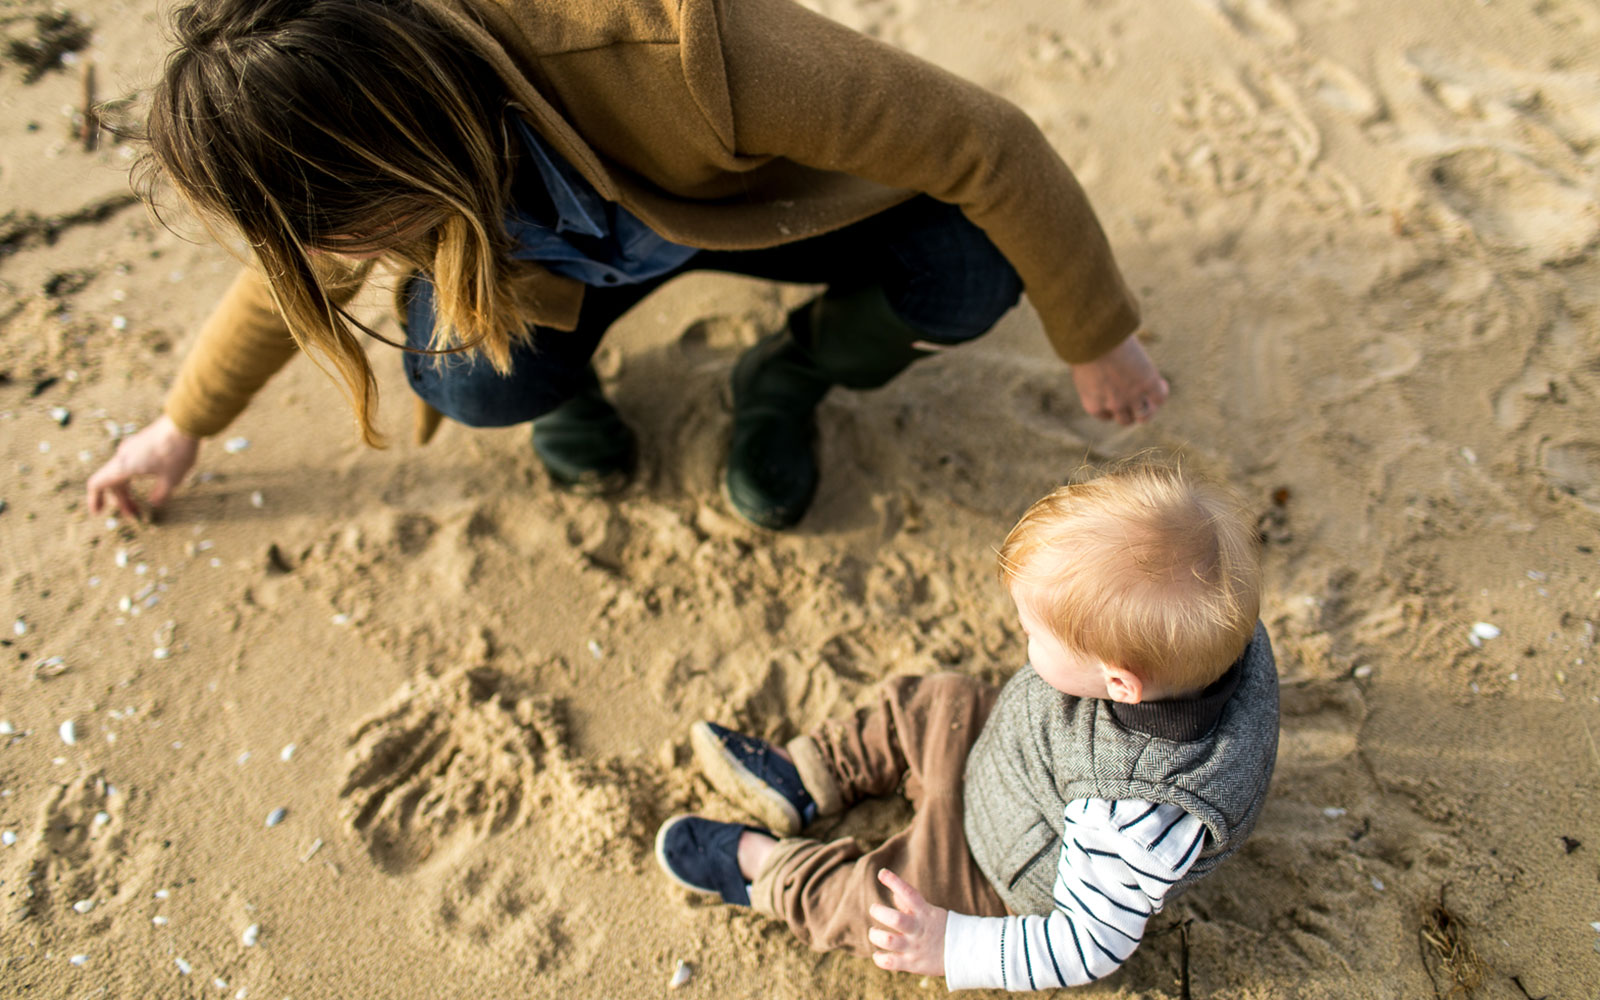 Motherhood is a journey of embracing each phase and season. More on The Fresh Exchange.